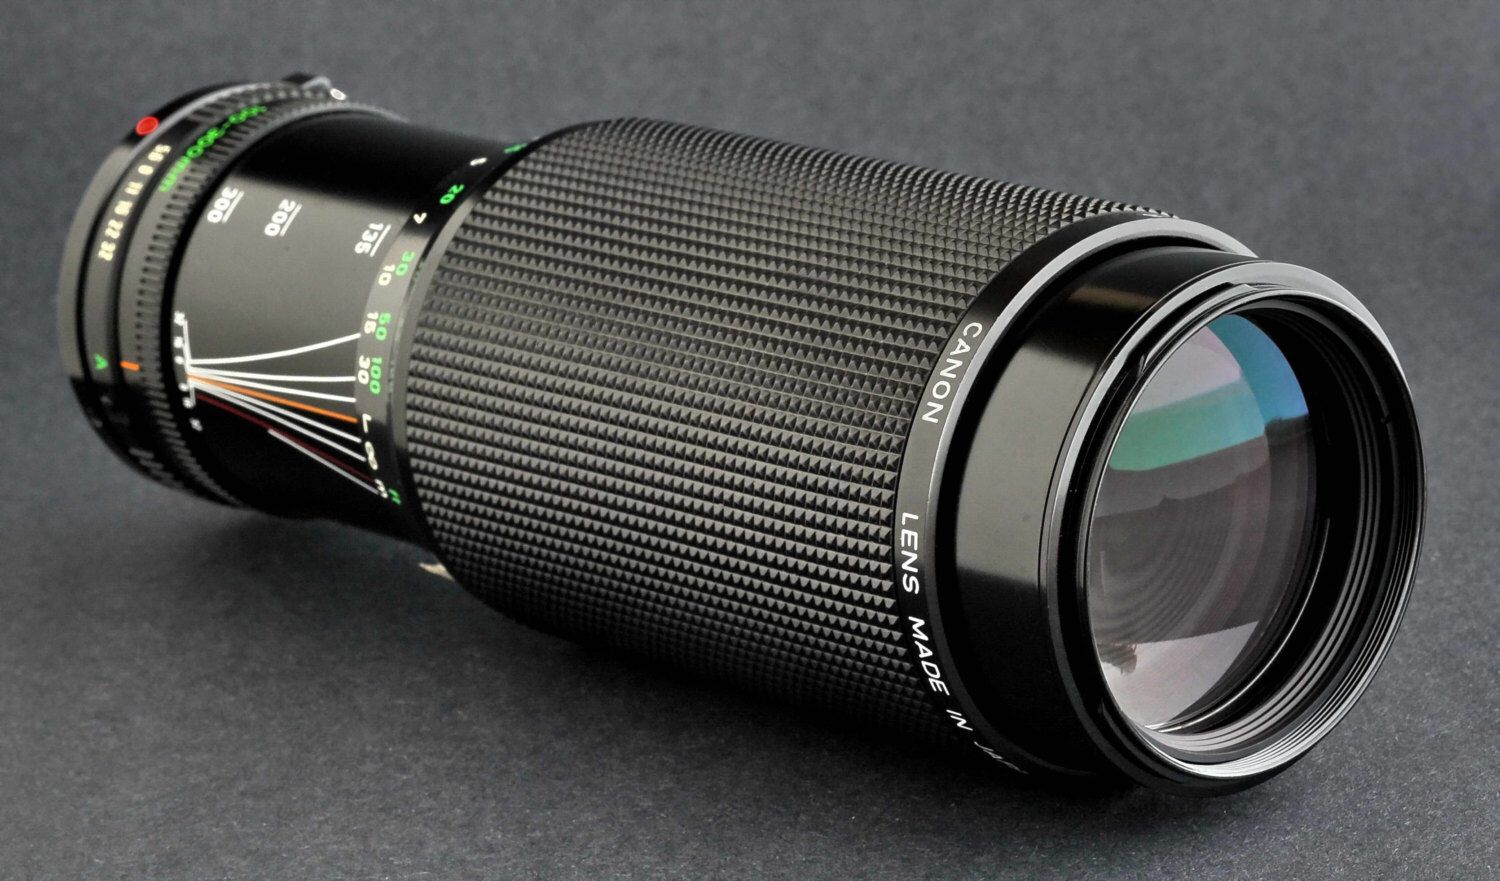 Canon New Fd 100 300mm F 5 6n Telephoto Prime Lens 4 Ae 1 A 1 Etsy Photography Gear Telephoto Zoom Lens Canon